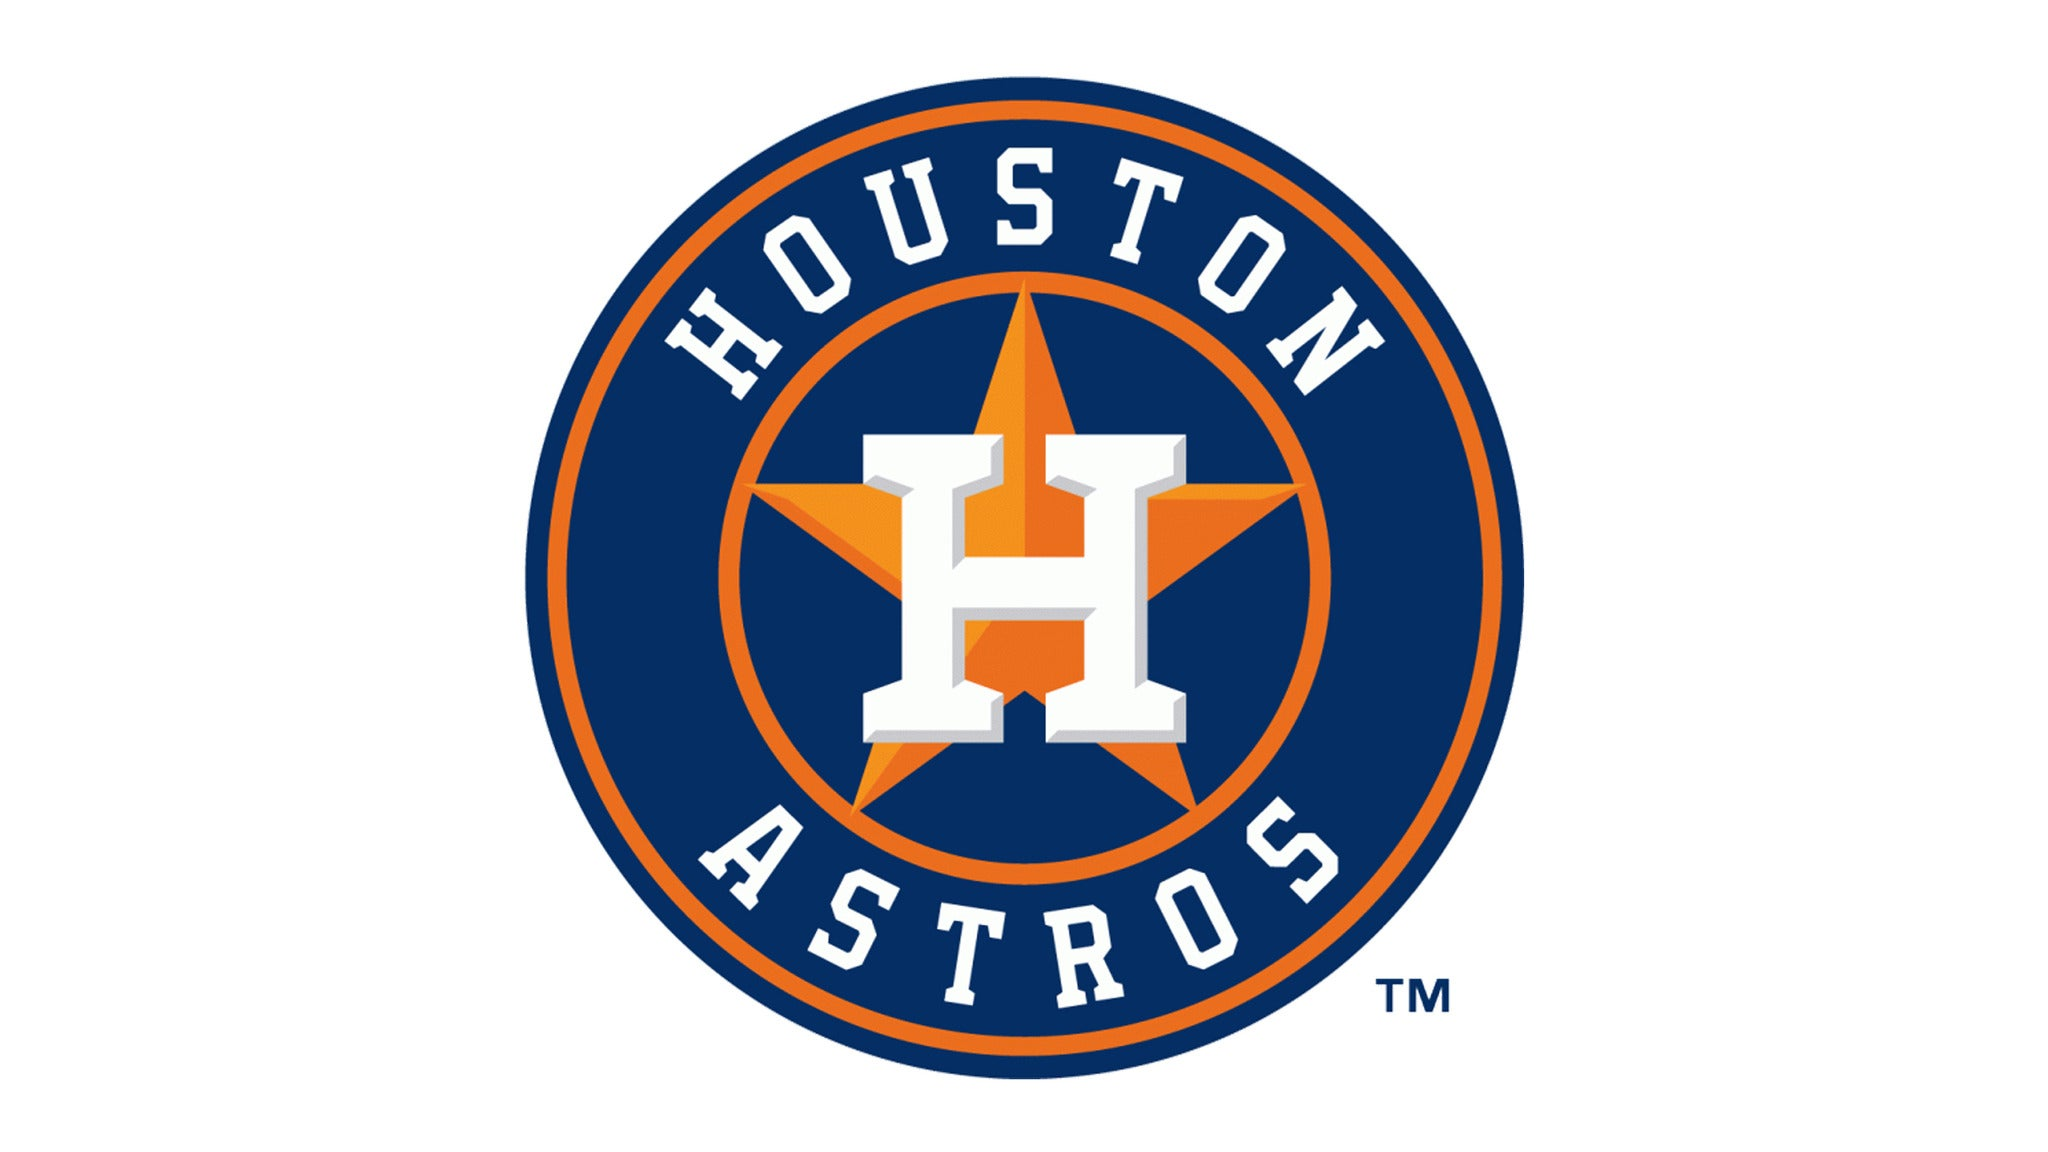 Los Angeles Angels at Houston Astros at Minute Maid Park